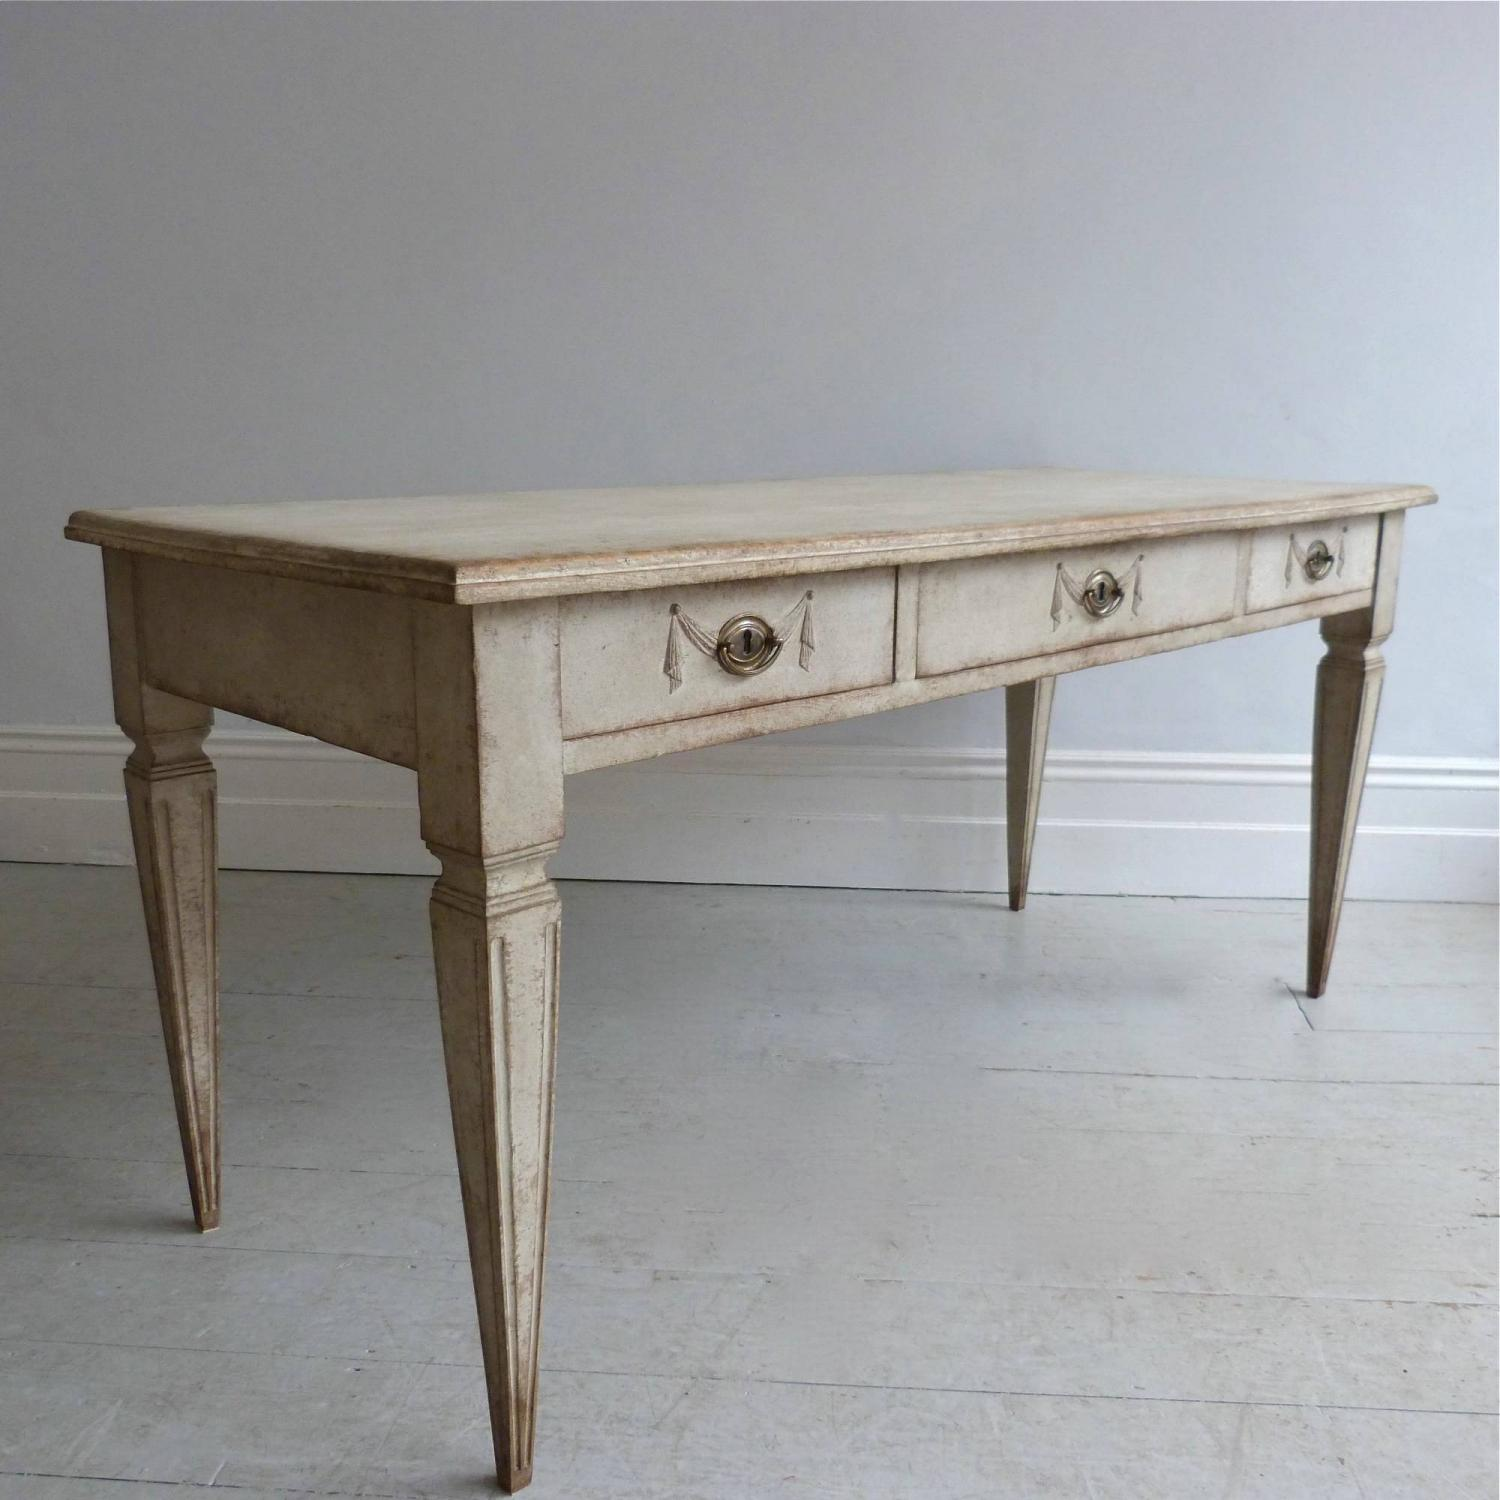 RARE 19TH CENTURY GUSTAVIAN STYLE SERVER OR CONSOLE